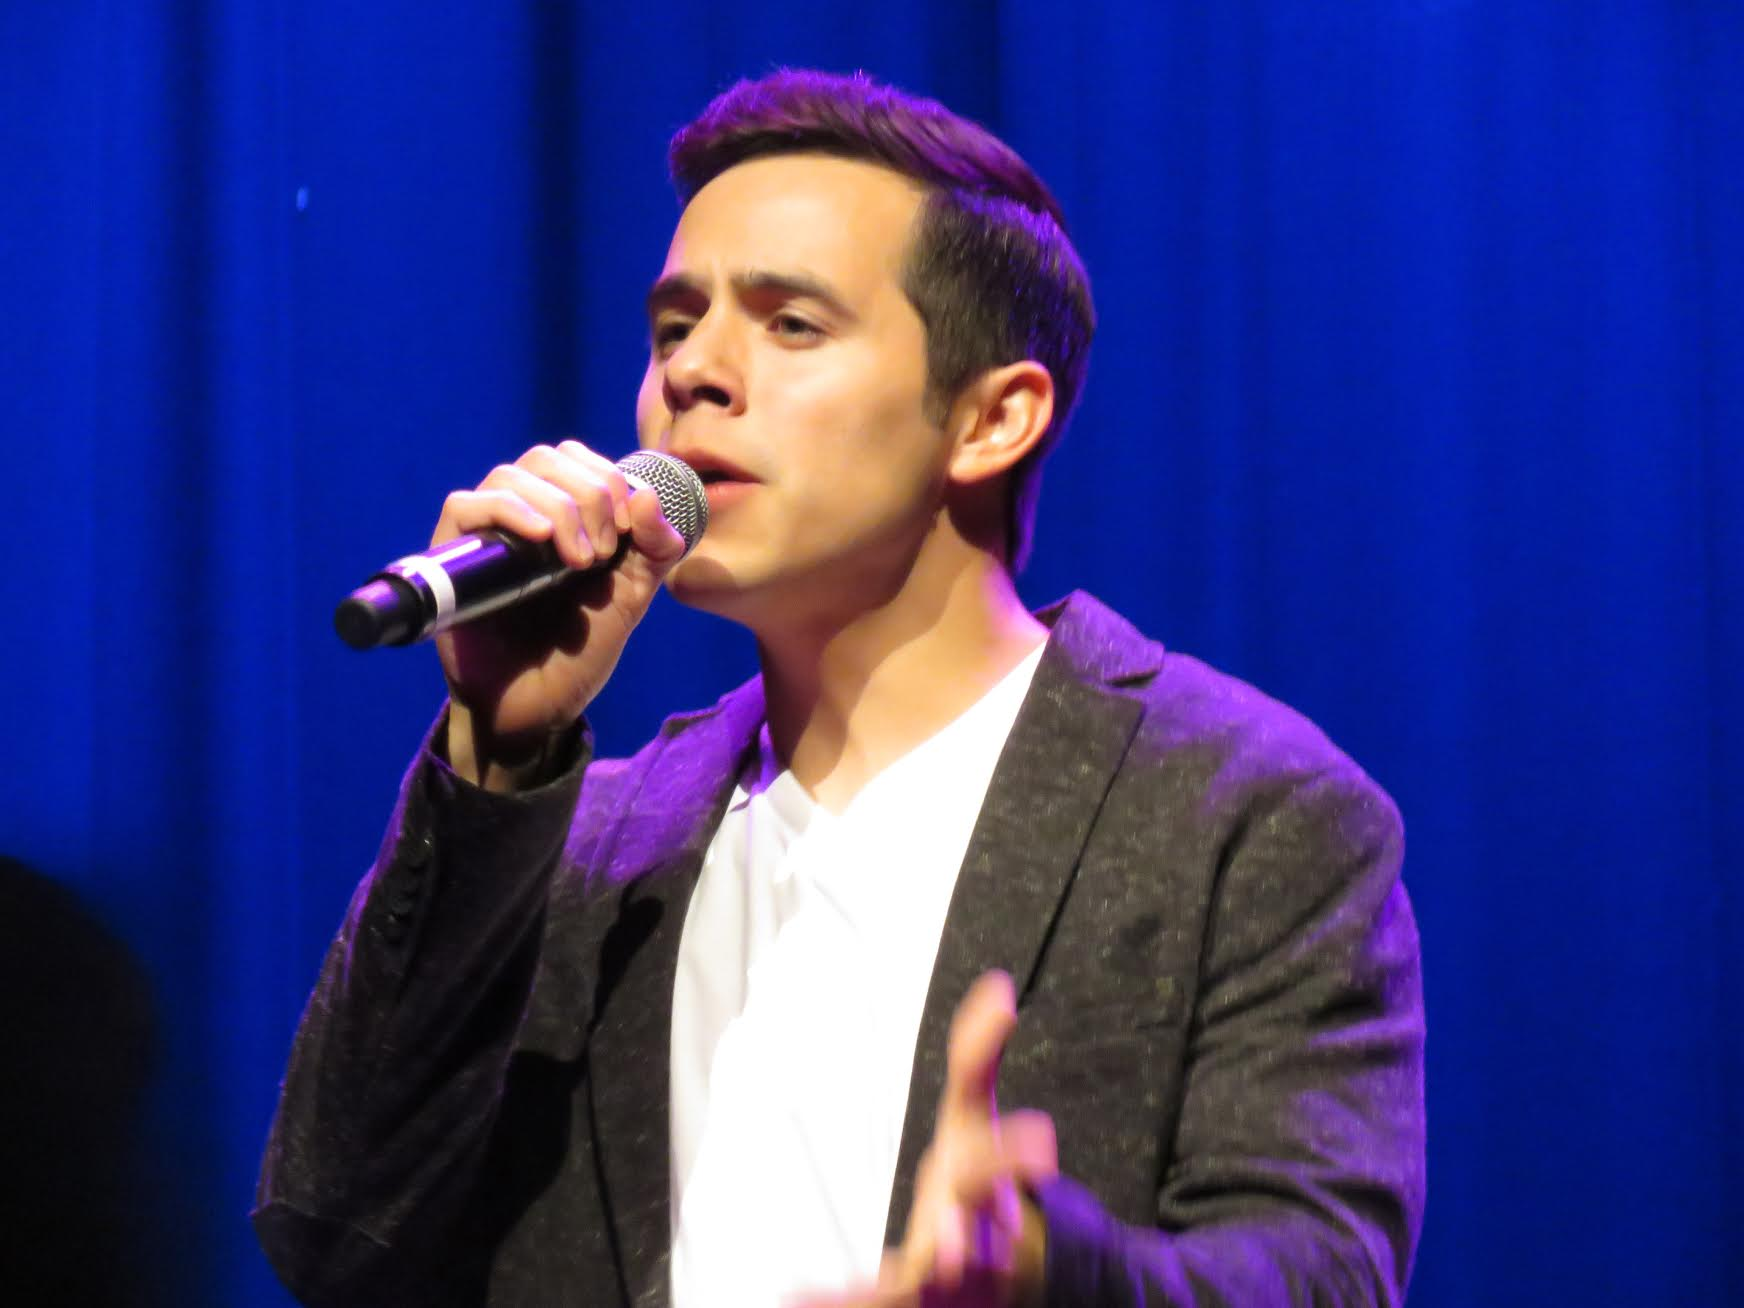 David Archuleta open hand singing credit Shelley Fans of David